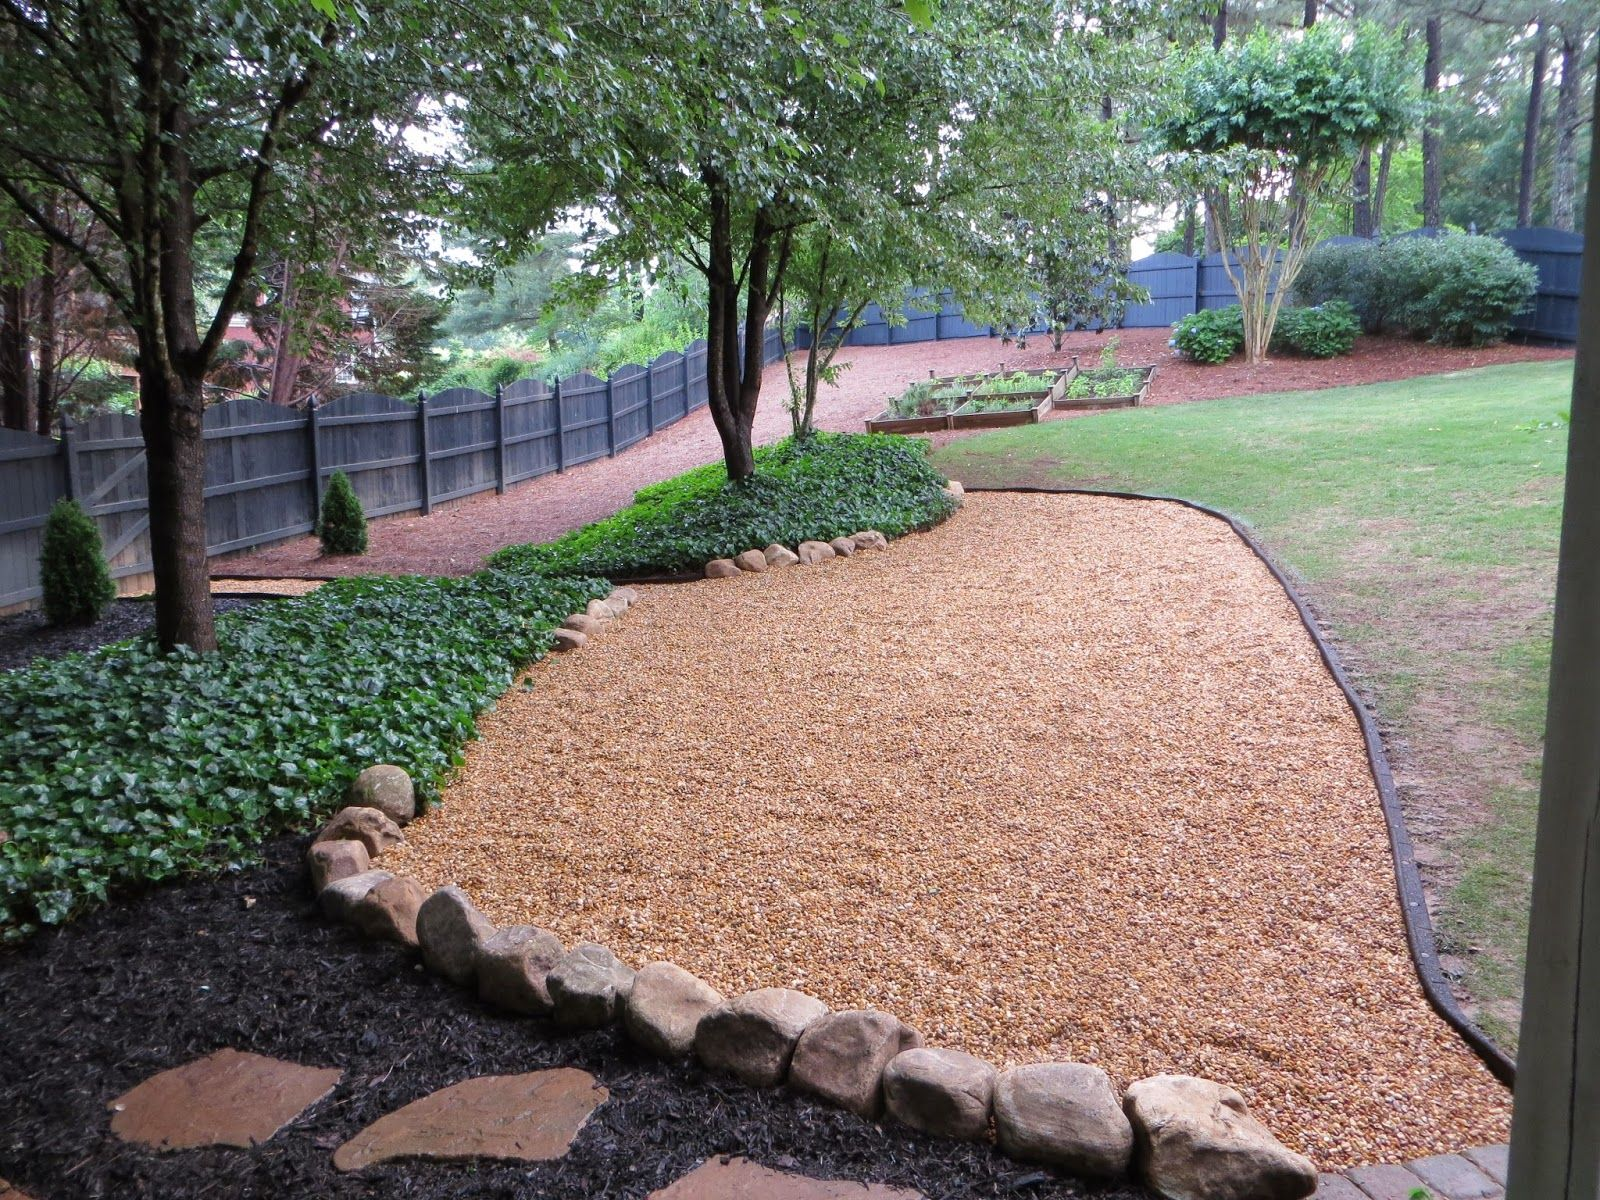 Pea gravel and stone seating new pea gravel patio area for Decorative boulders for yard